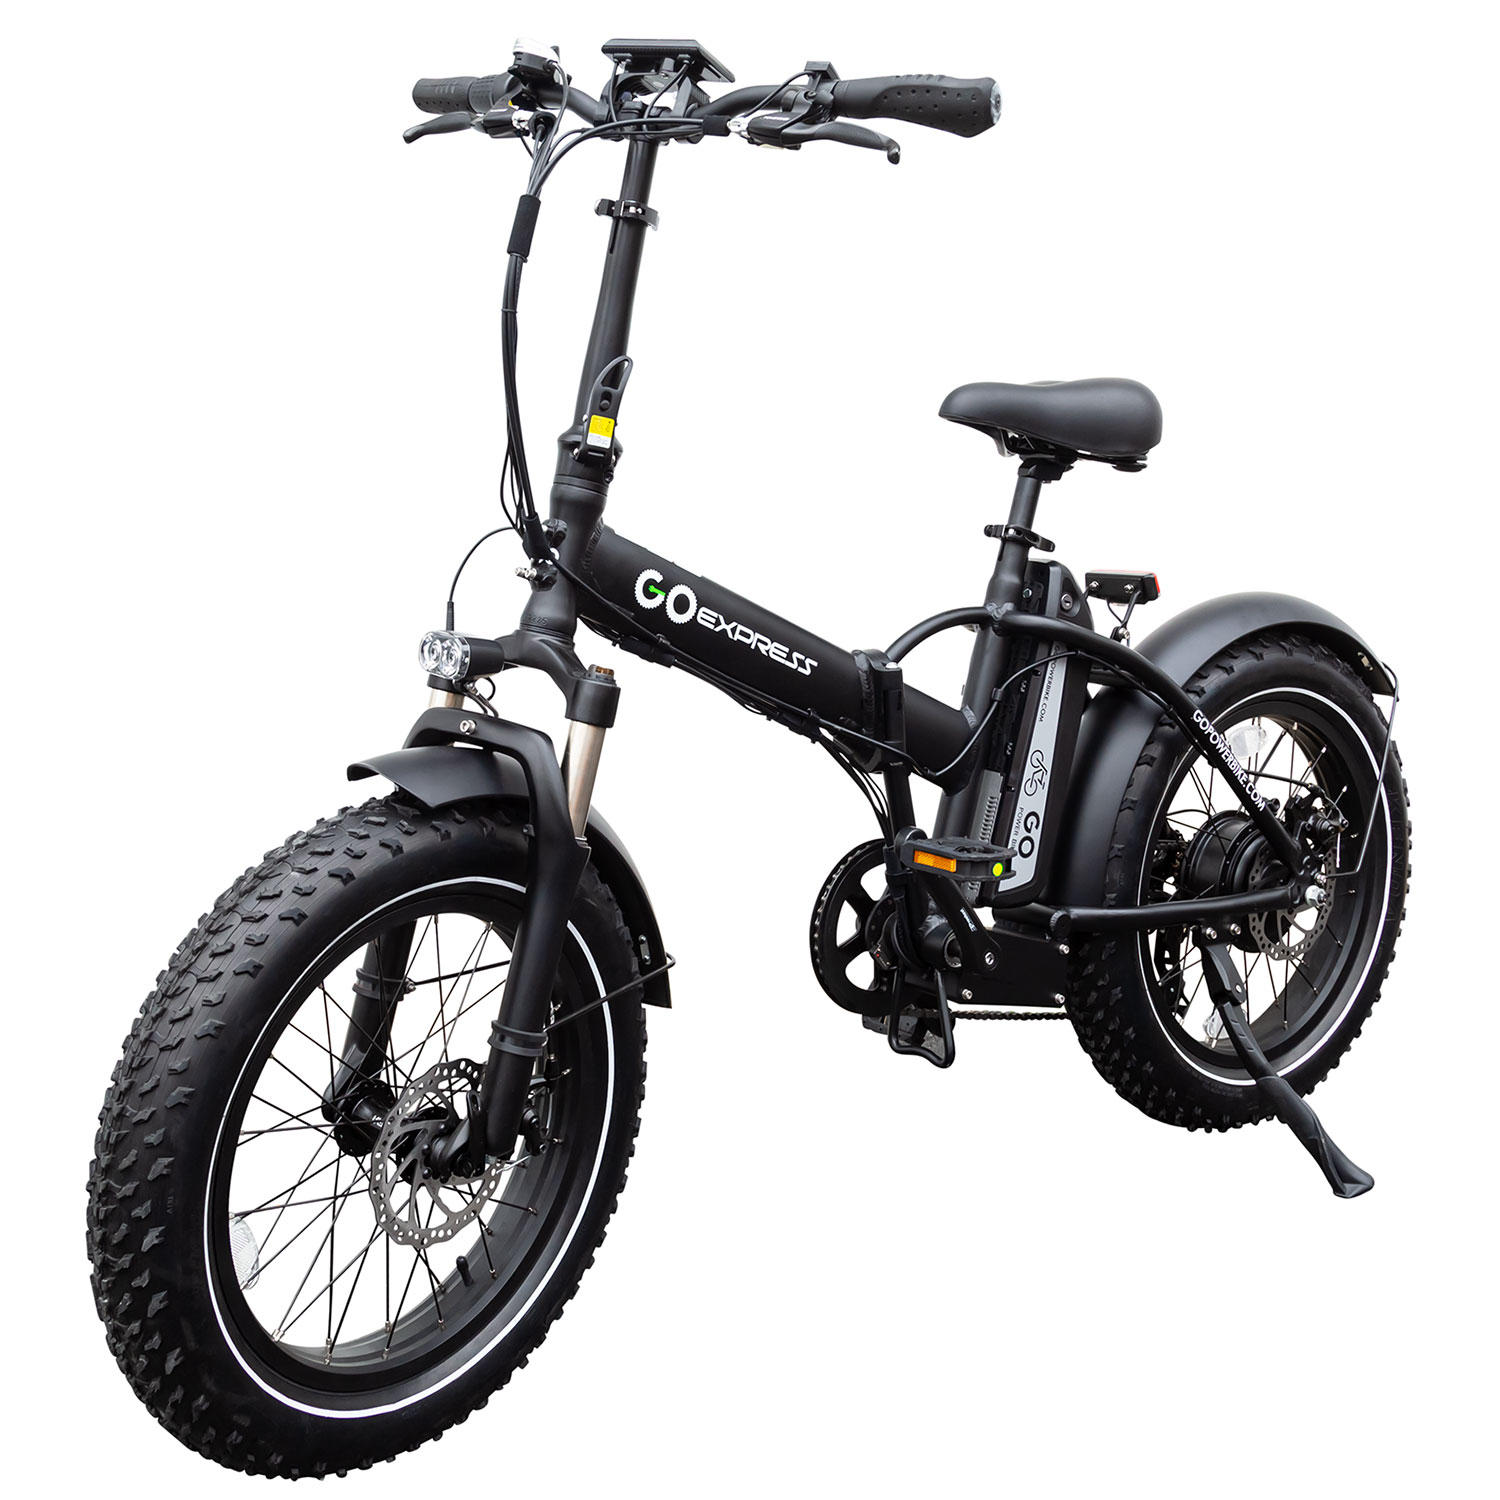 Gopowerbike GoExpressBike All Terrain 500W Electric Foldable Bicycle